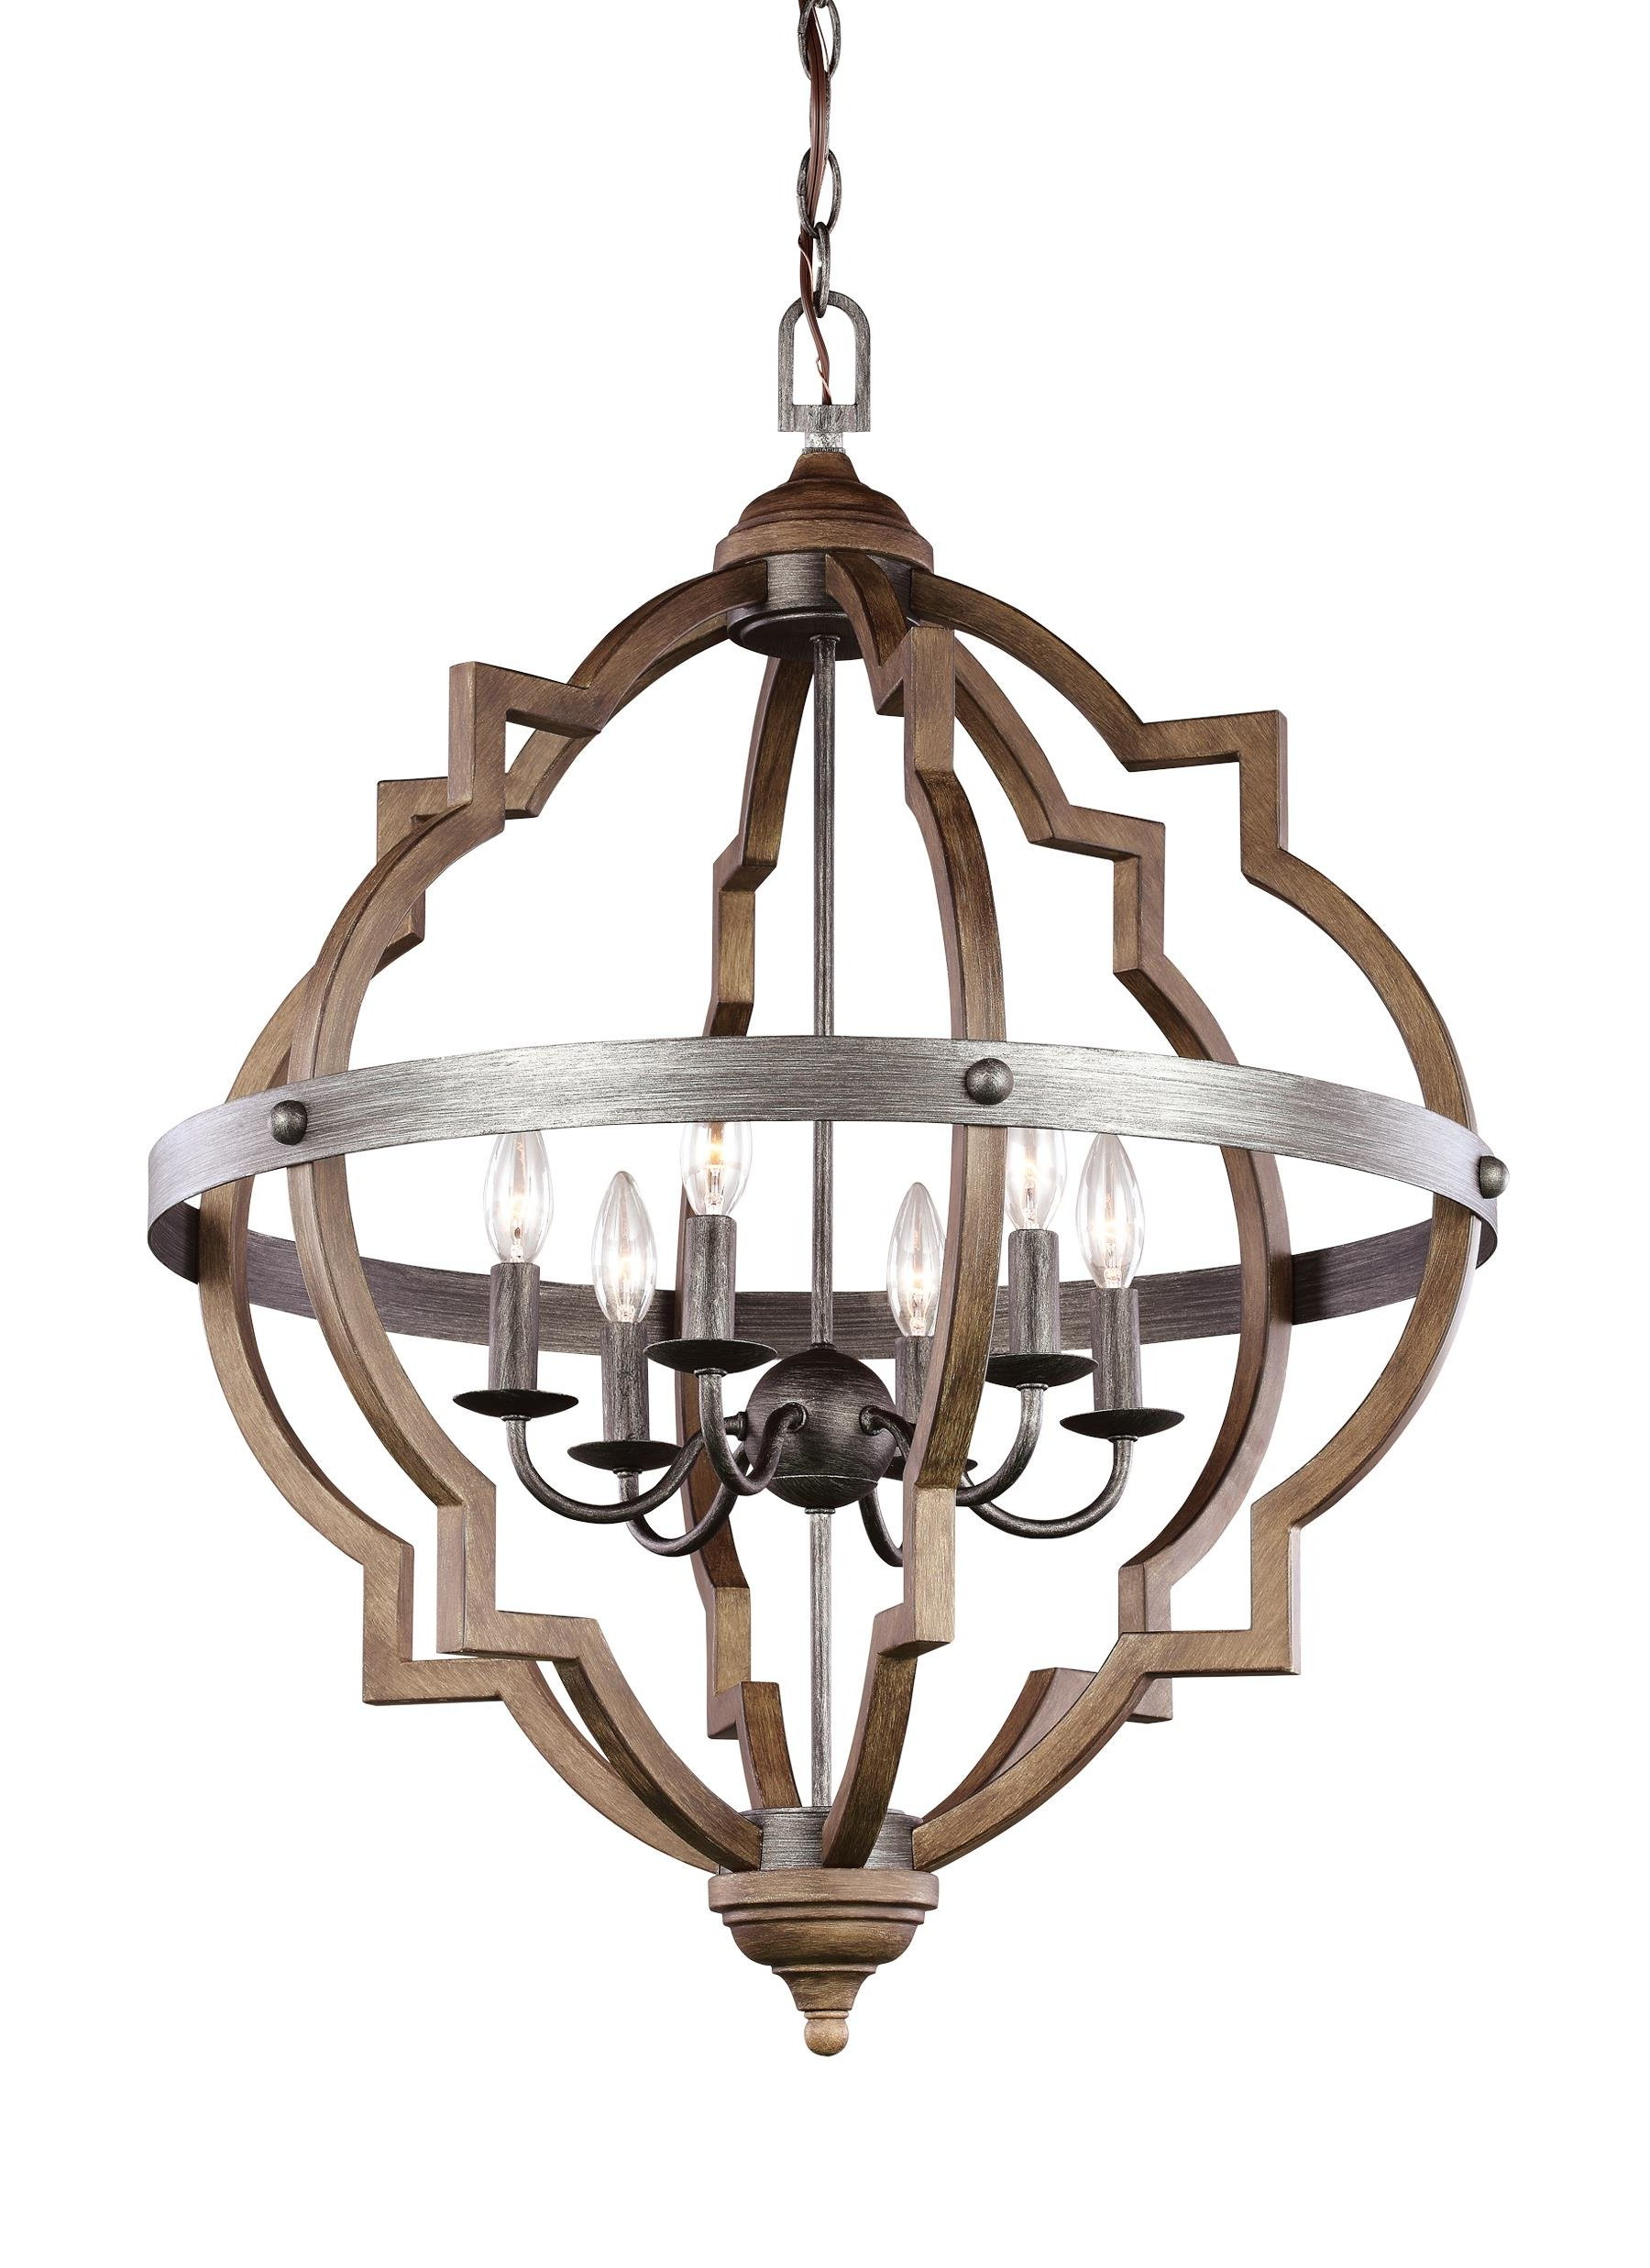 Fashionable Bennington 6 Light Candle Style Chandeliers With Regard To Bennington 6 Light Candle Style Chandelier (Gallery 2 of 20)